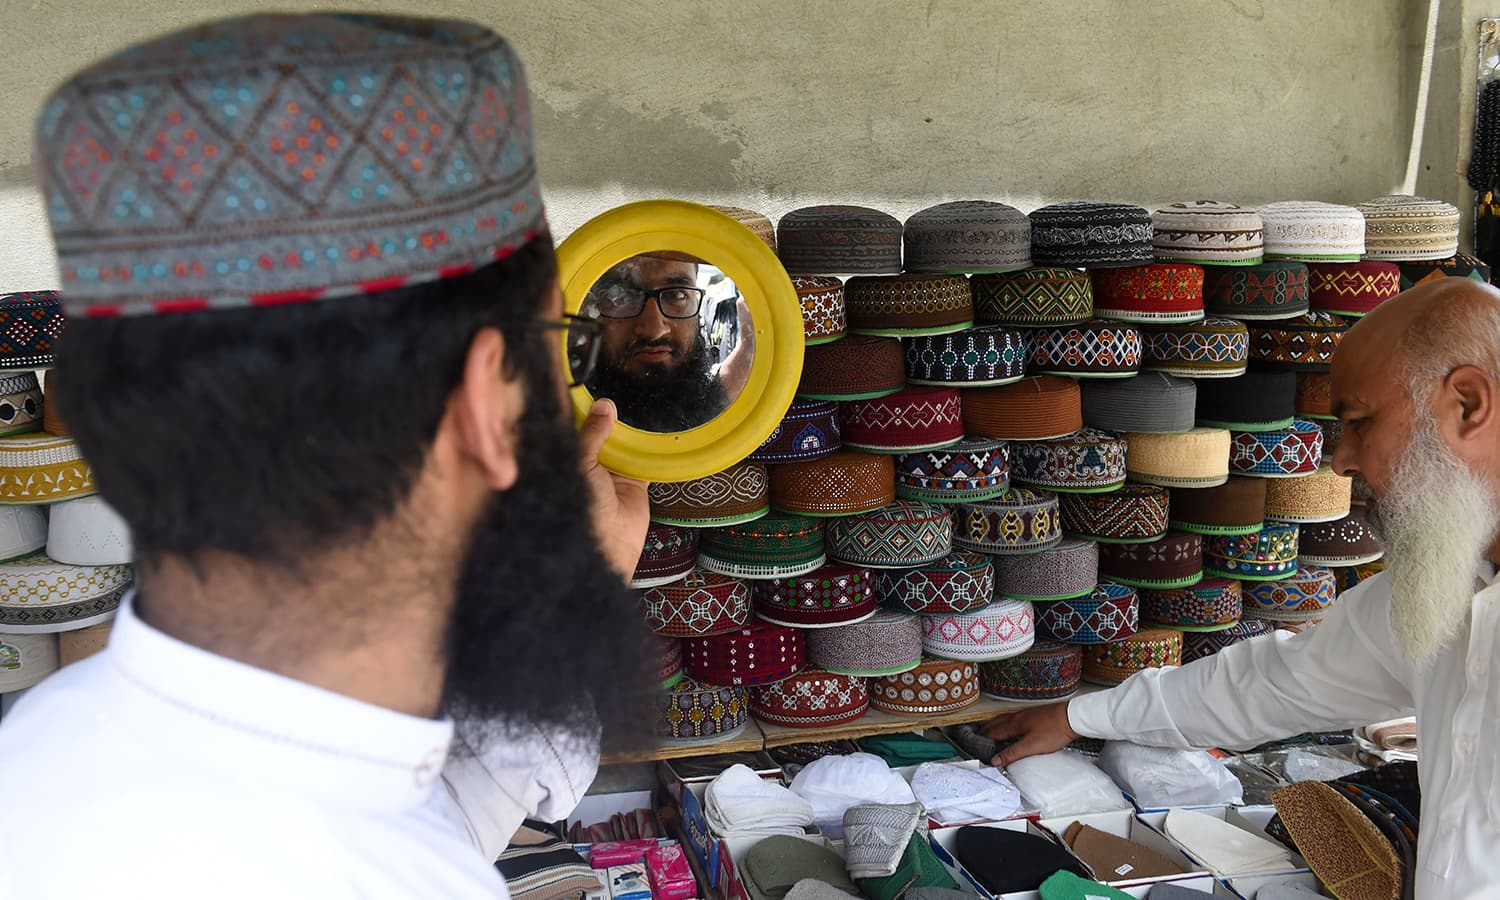 A Pakistani man looks at prayer caps at a roadside stall ahead of the Muslim fasting month of Ramazan in Lahore. — AFP